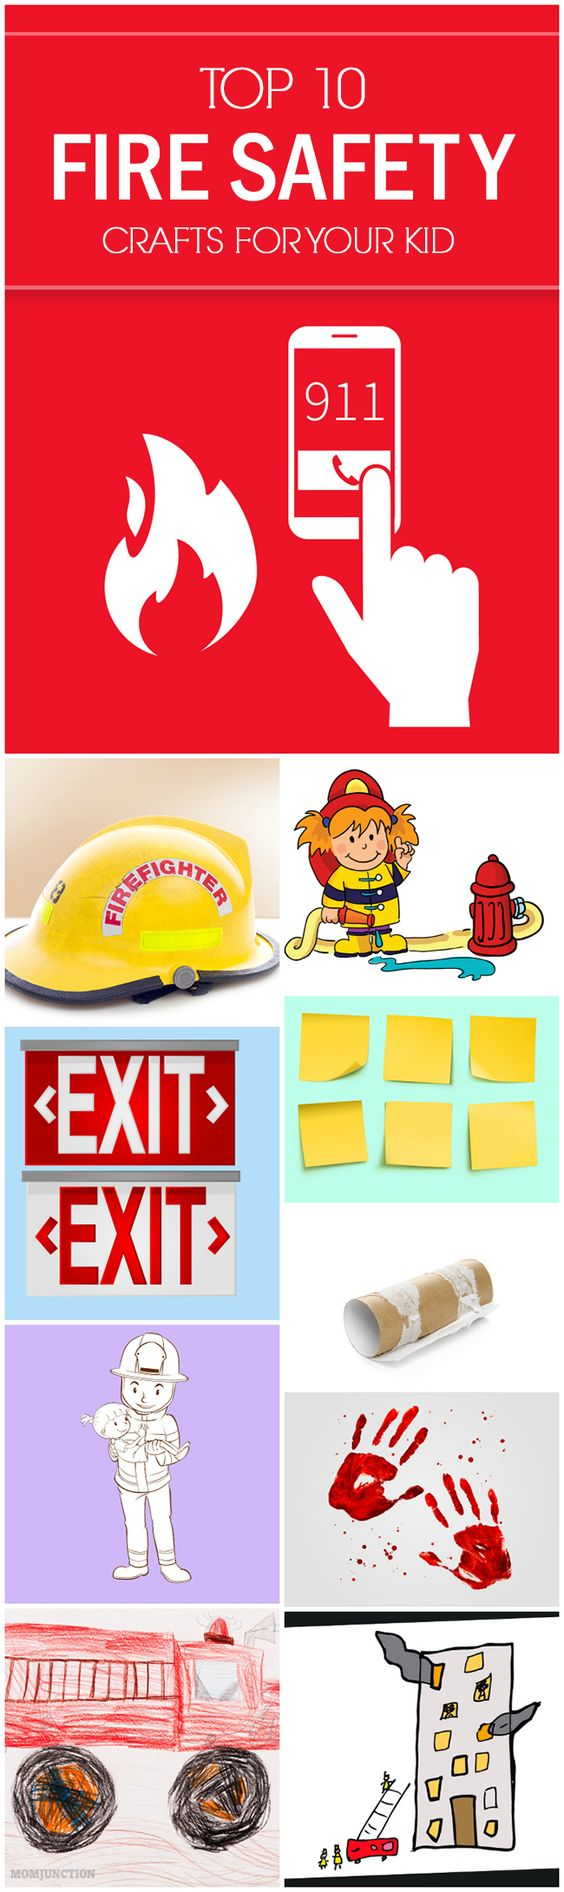 Top 10 Fire Safety Crafts For Your Kid Crafts, The o